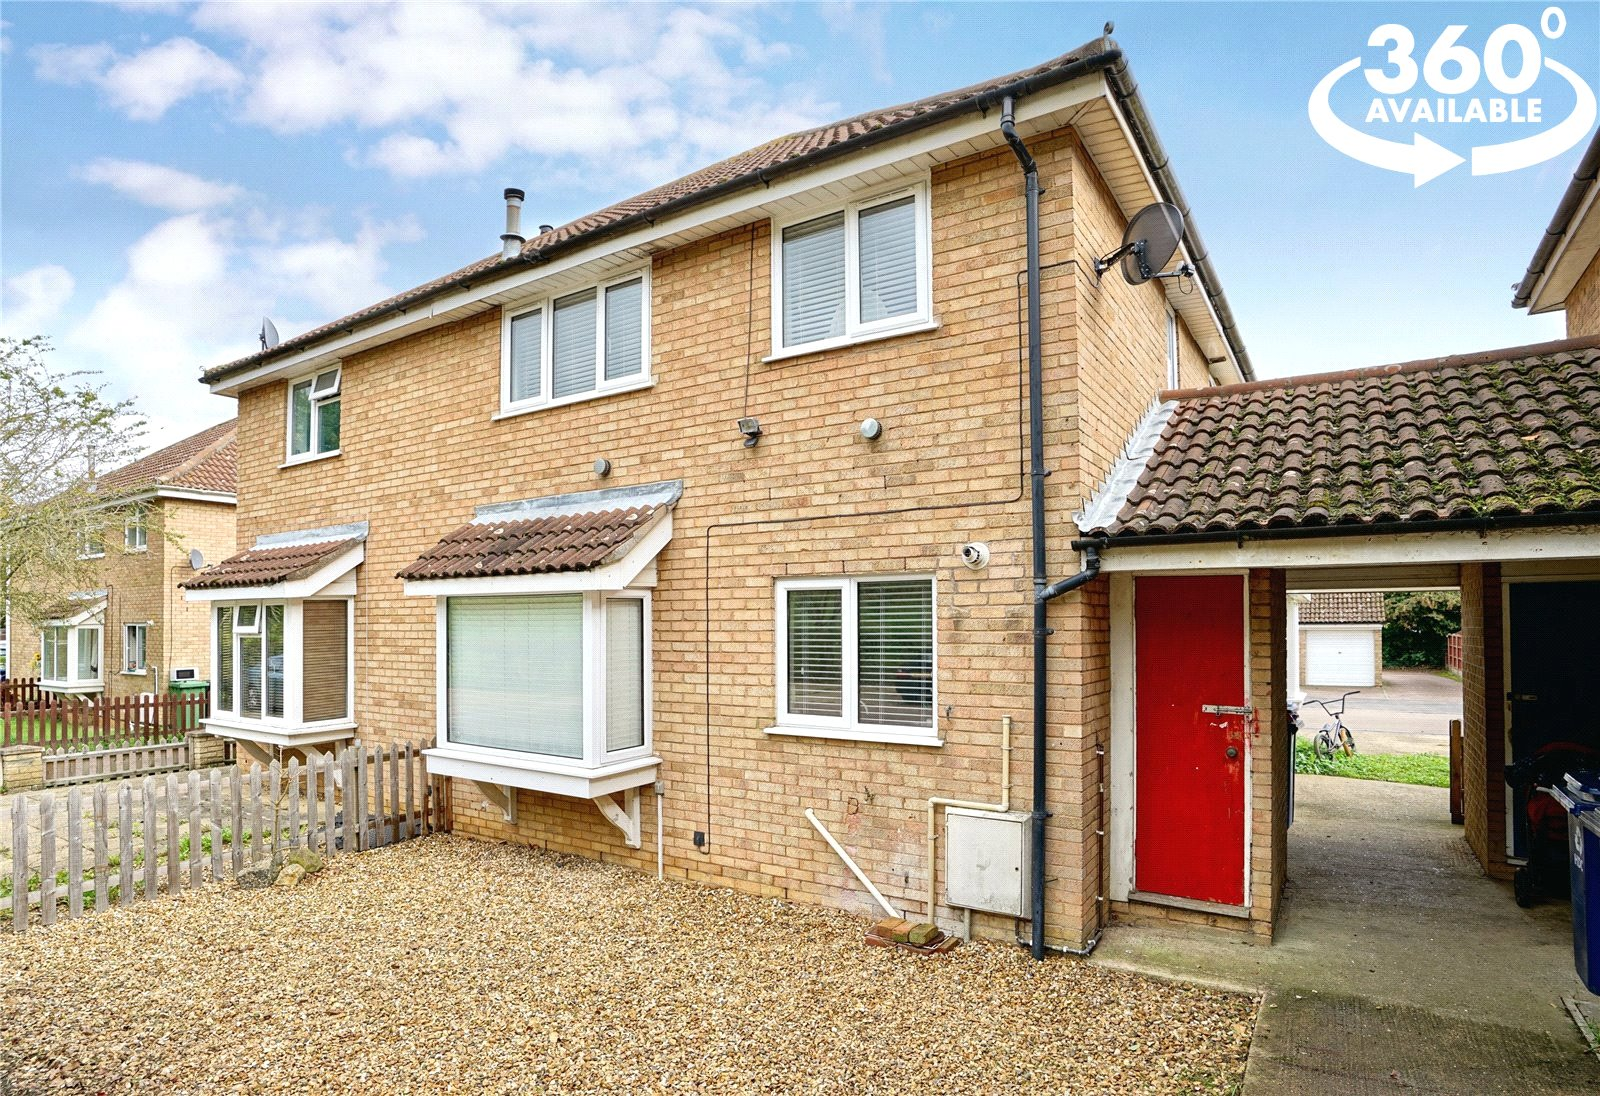 2 bed house for sale in Eaton Ford, PE19 7GQ, PE19